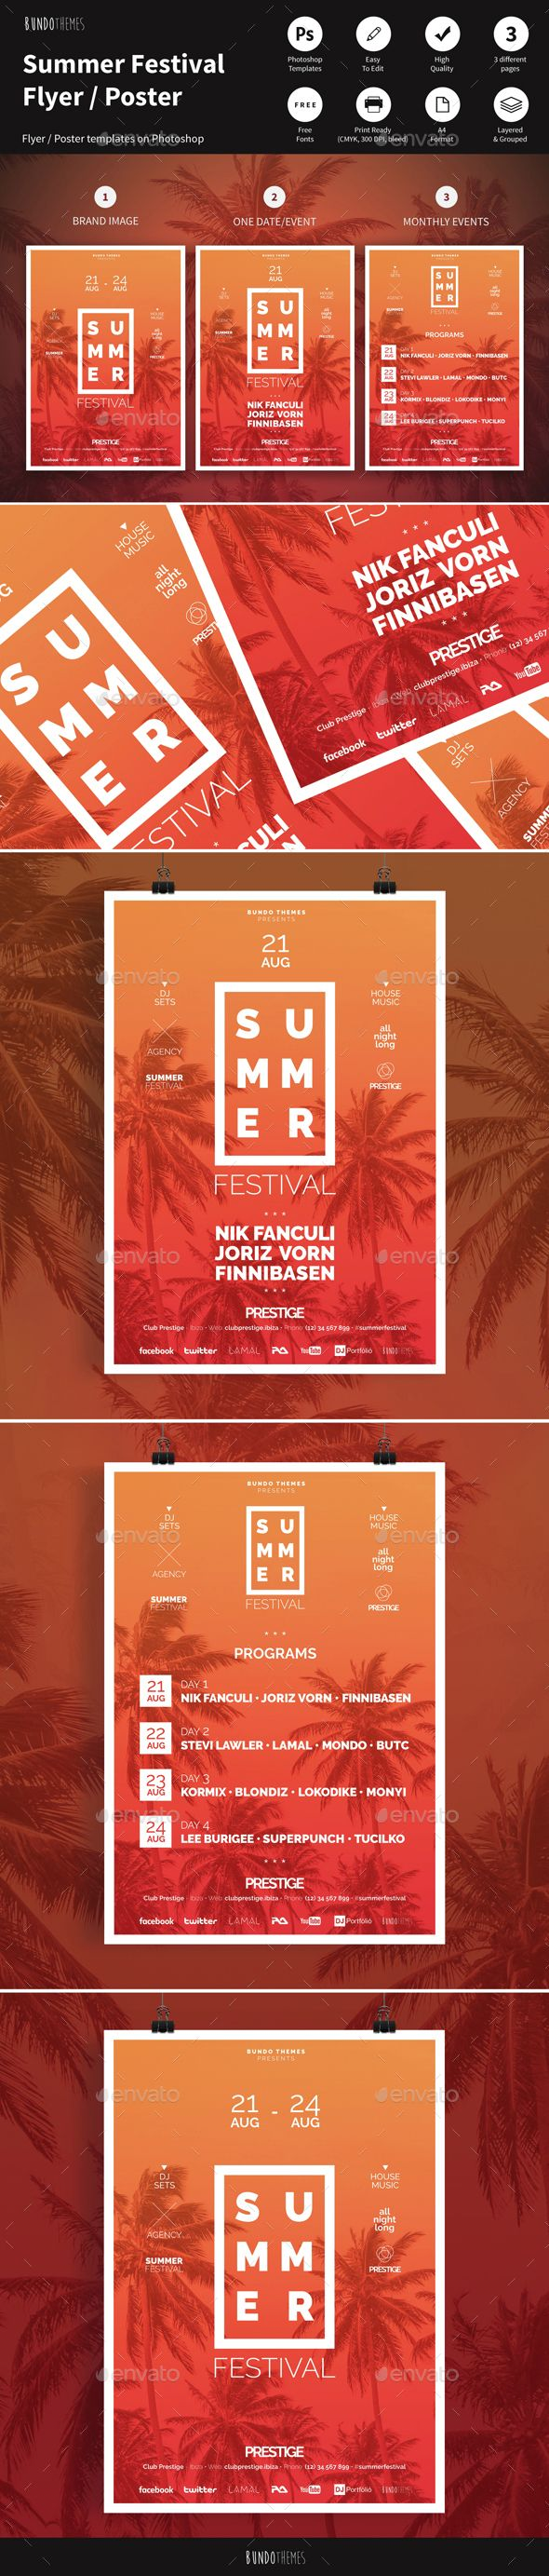 Summer Festival Flyer / Poster Template PSD. Download here: http://graphicriver.net/item/summer-festival-flyer-poster/14559395?ref=ksioks